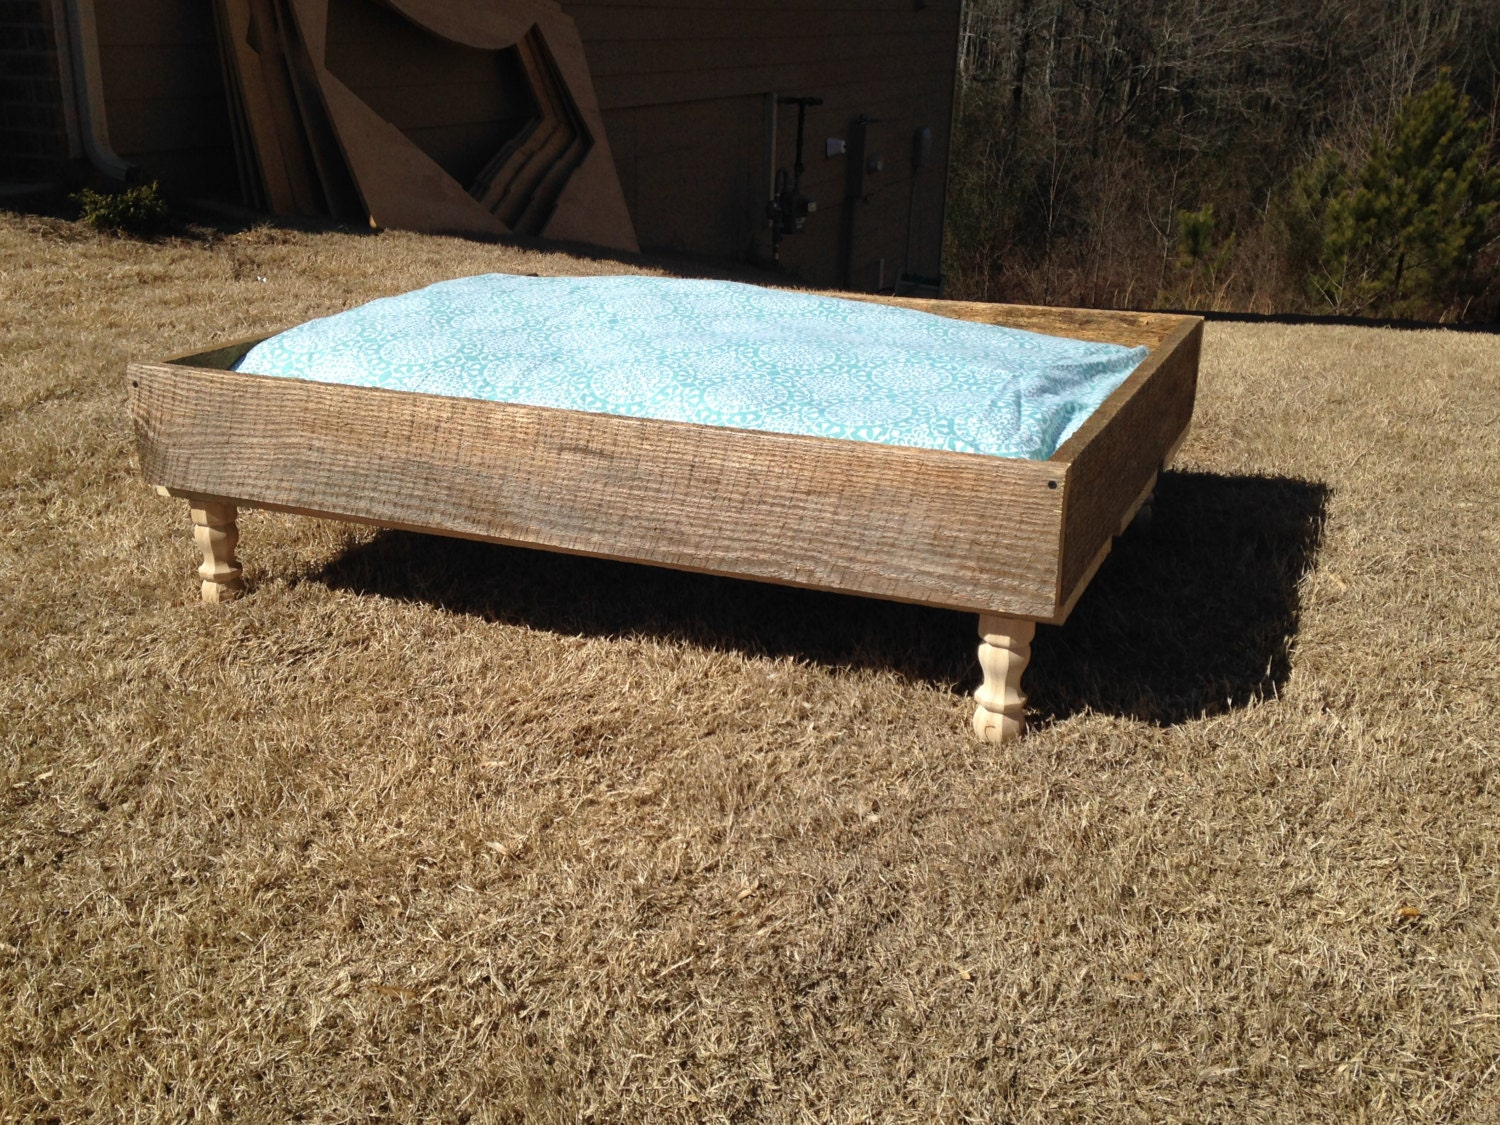 Very Impressive portraiture of Rustic Wooden Pet Bed by FiveSixteenOriginals on Etsy with #308C9B color and 1500x1125 pixels